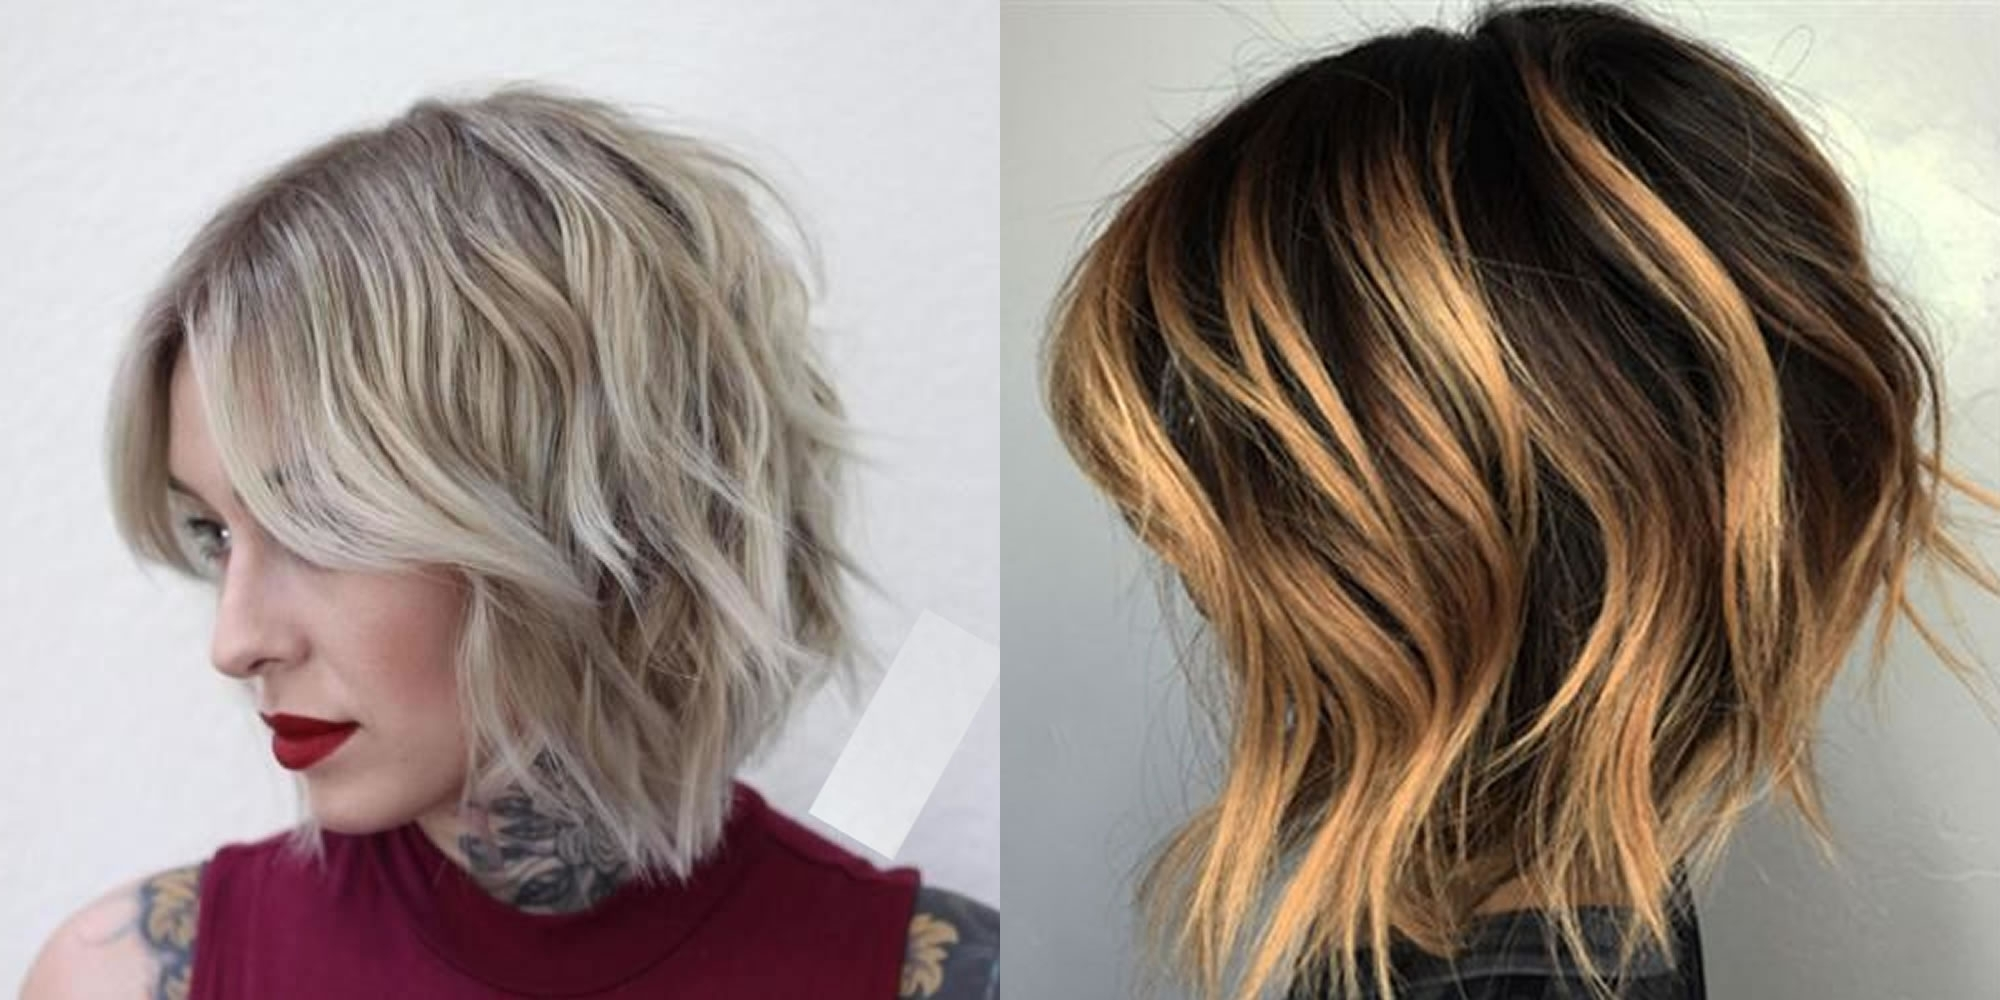 The Best 50 Balayage Bob Hairstyles (Short+Long) & Highlights – Page Throughout Most Up To Date Shaggy Pixie Hairstyles With Balayage Highlights (View 18 of 20)